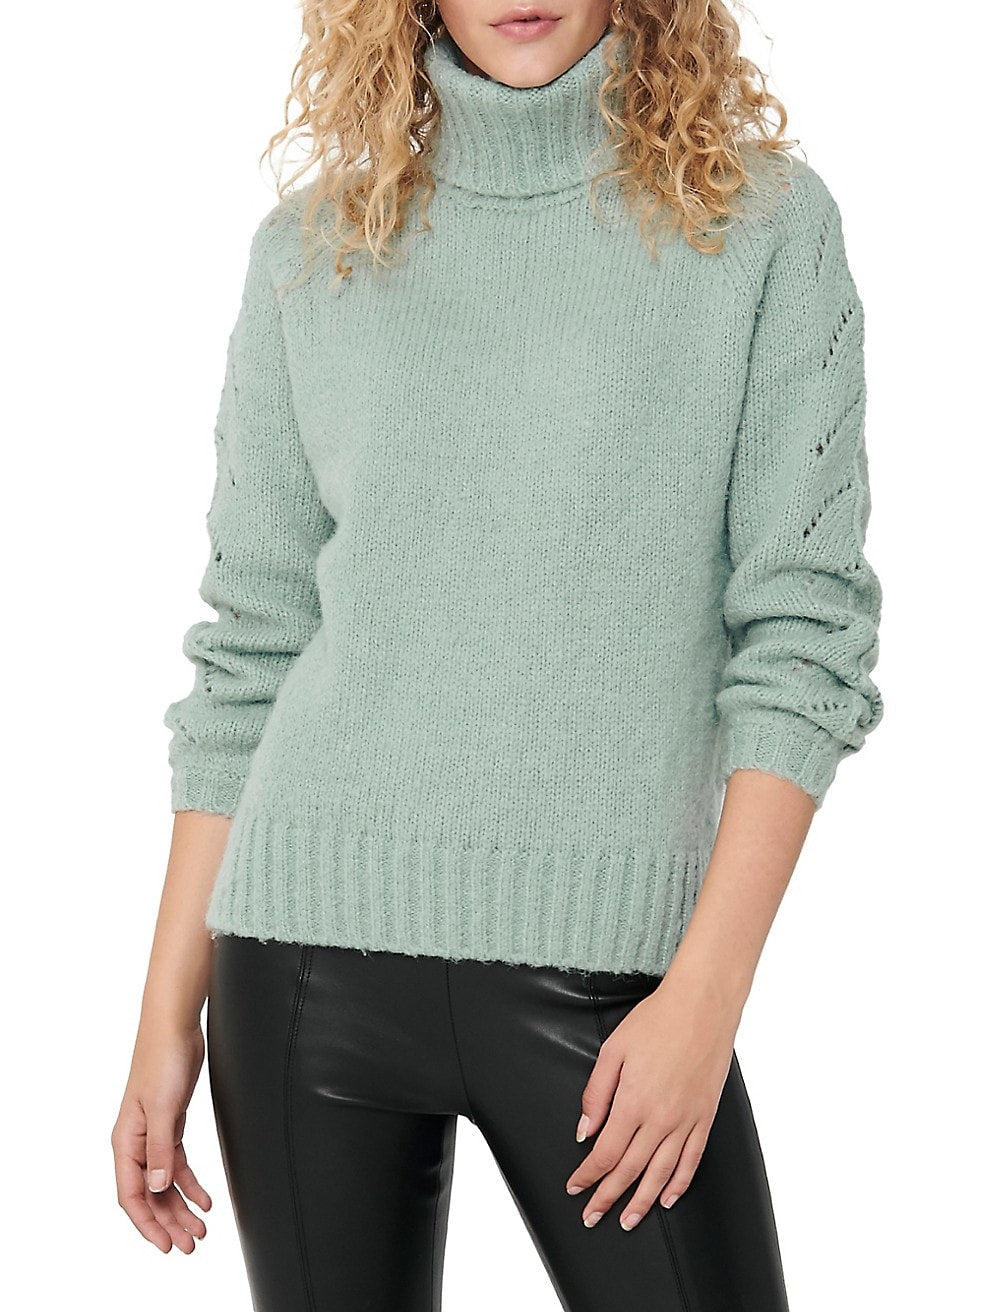 Eyelet Turtleneck Sweater